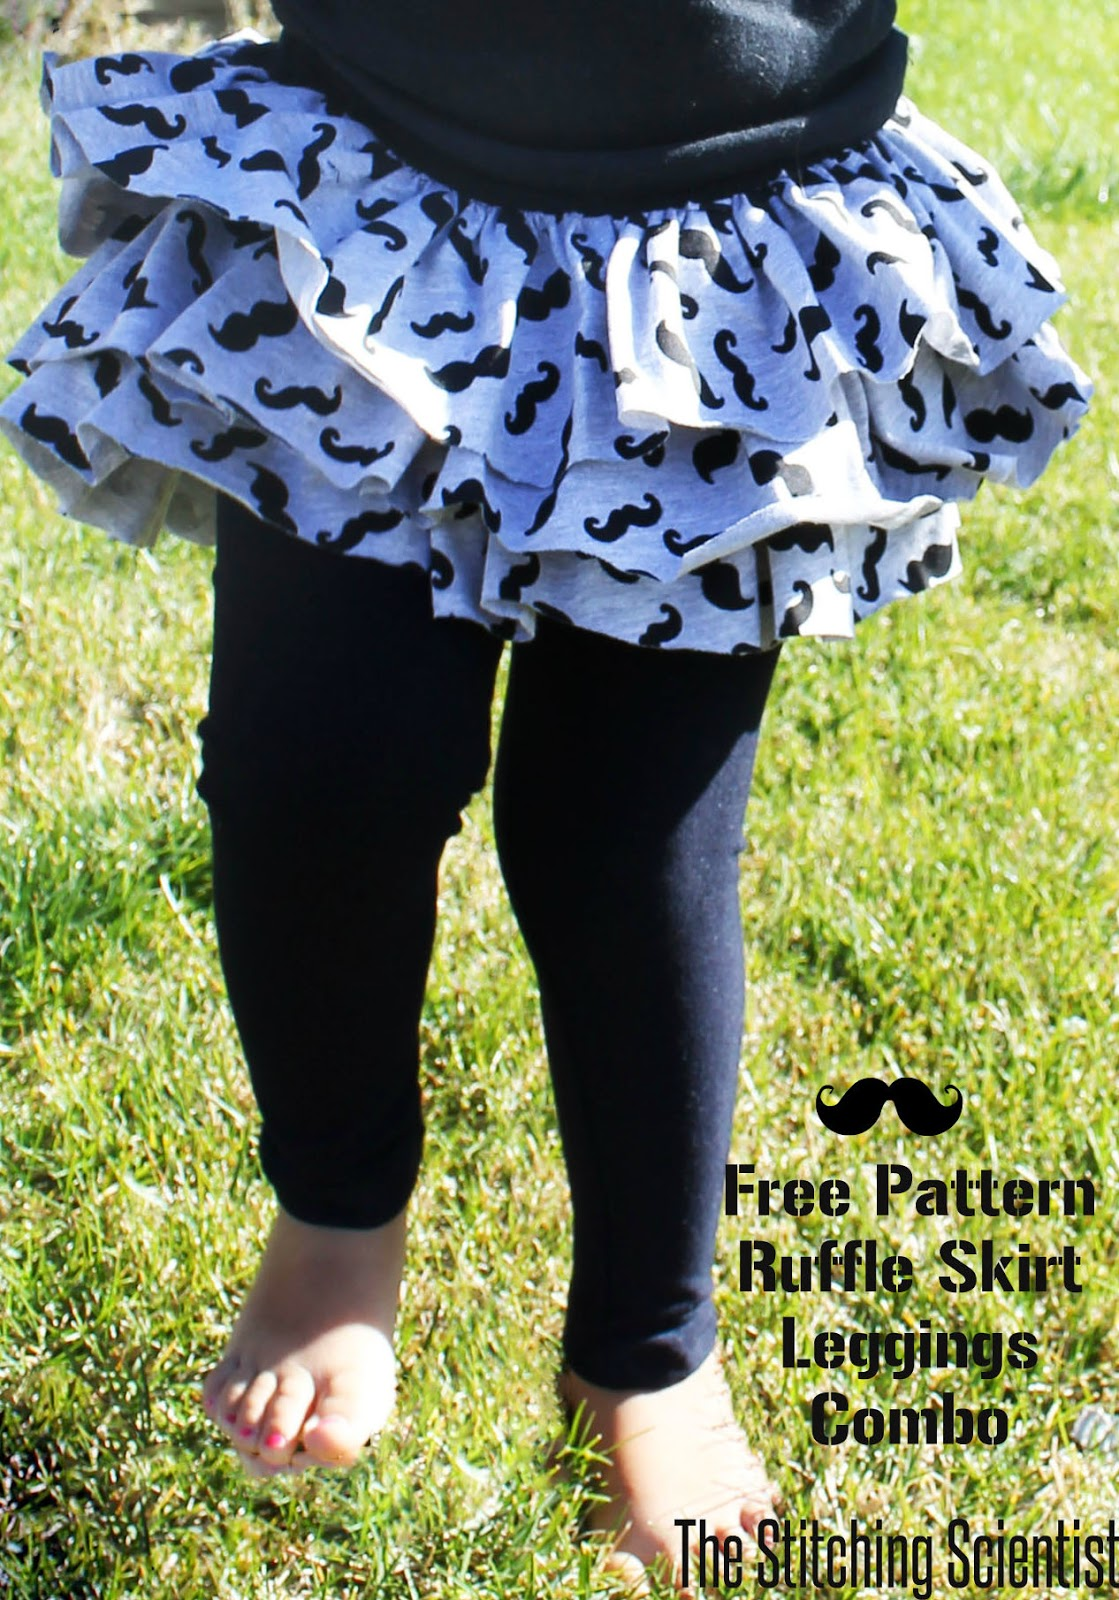 Ruffle skirt and leggings combo with free pattern the stitching once the elastic is in sew the opening close you can serge the top before you do the elastic but knit doesnt ravel so its not necessary bankloansurffo Images